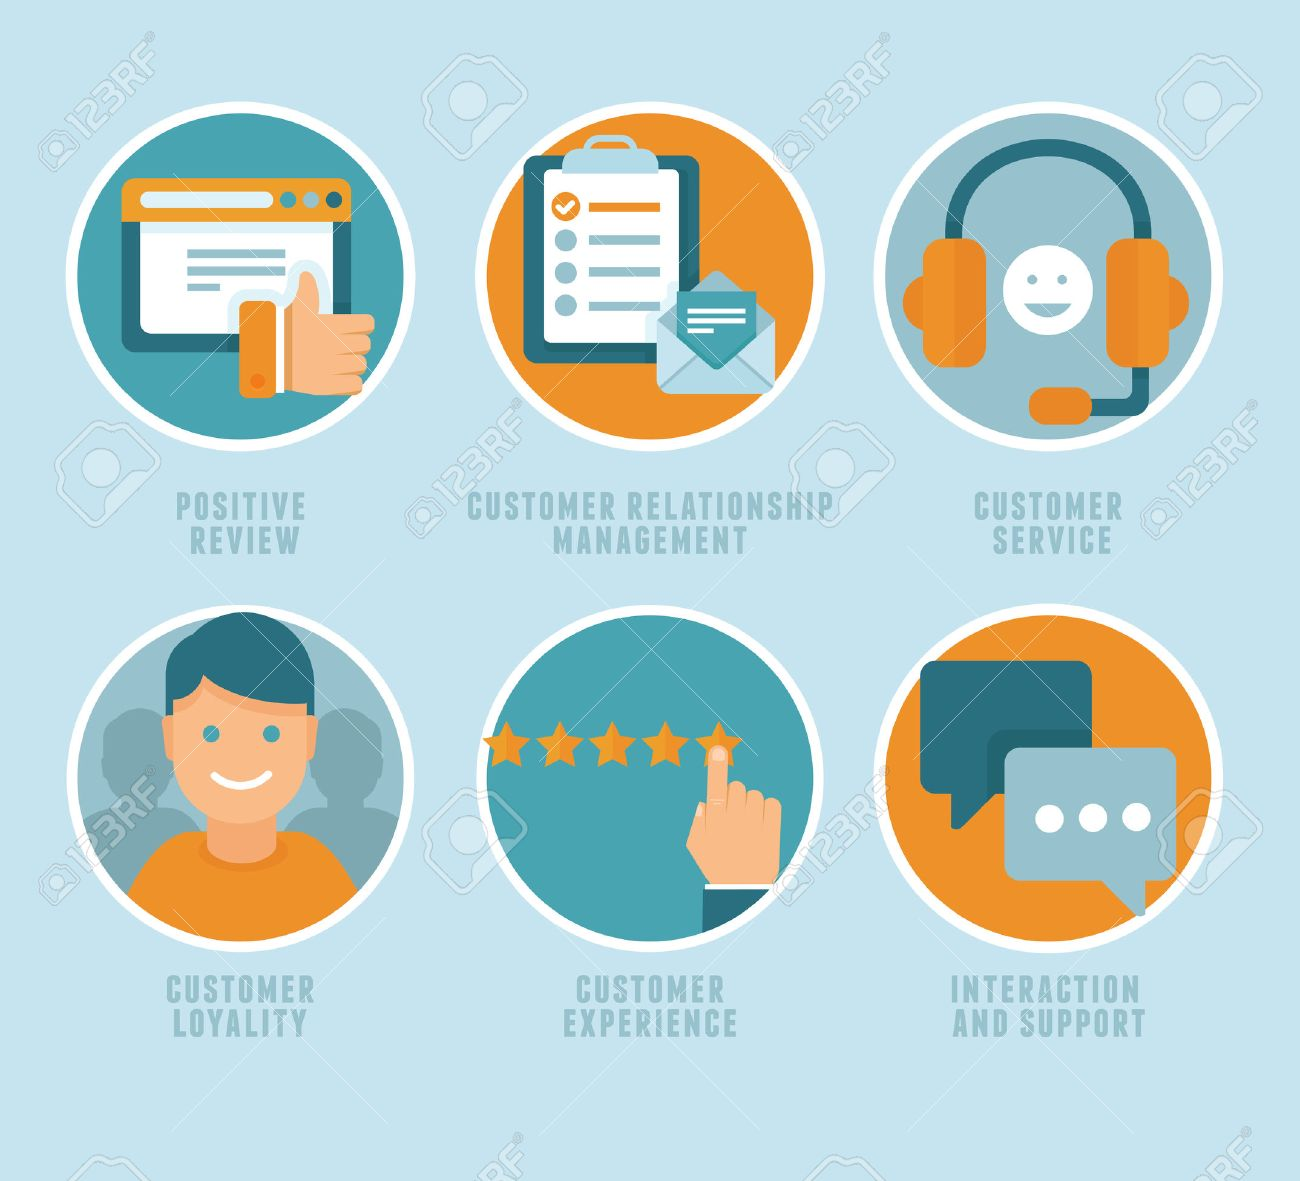 vector flat customer experience concepts icons and infographic vector vector flat customer experience concepts icons and infographic design elements positive review customer service and support